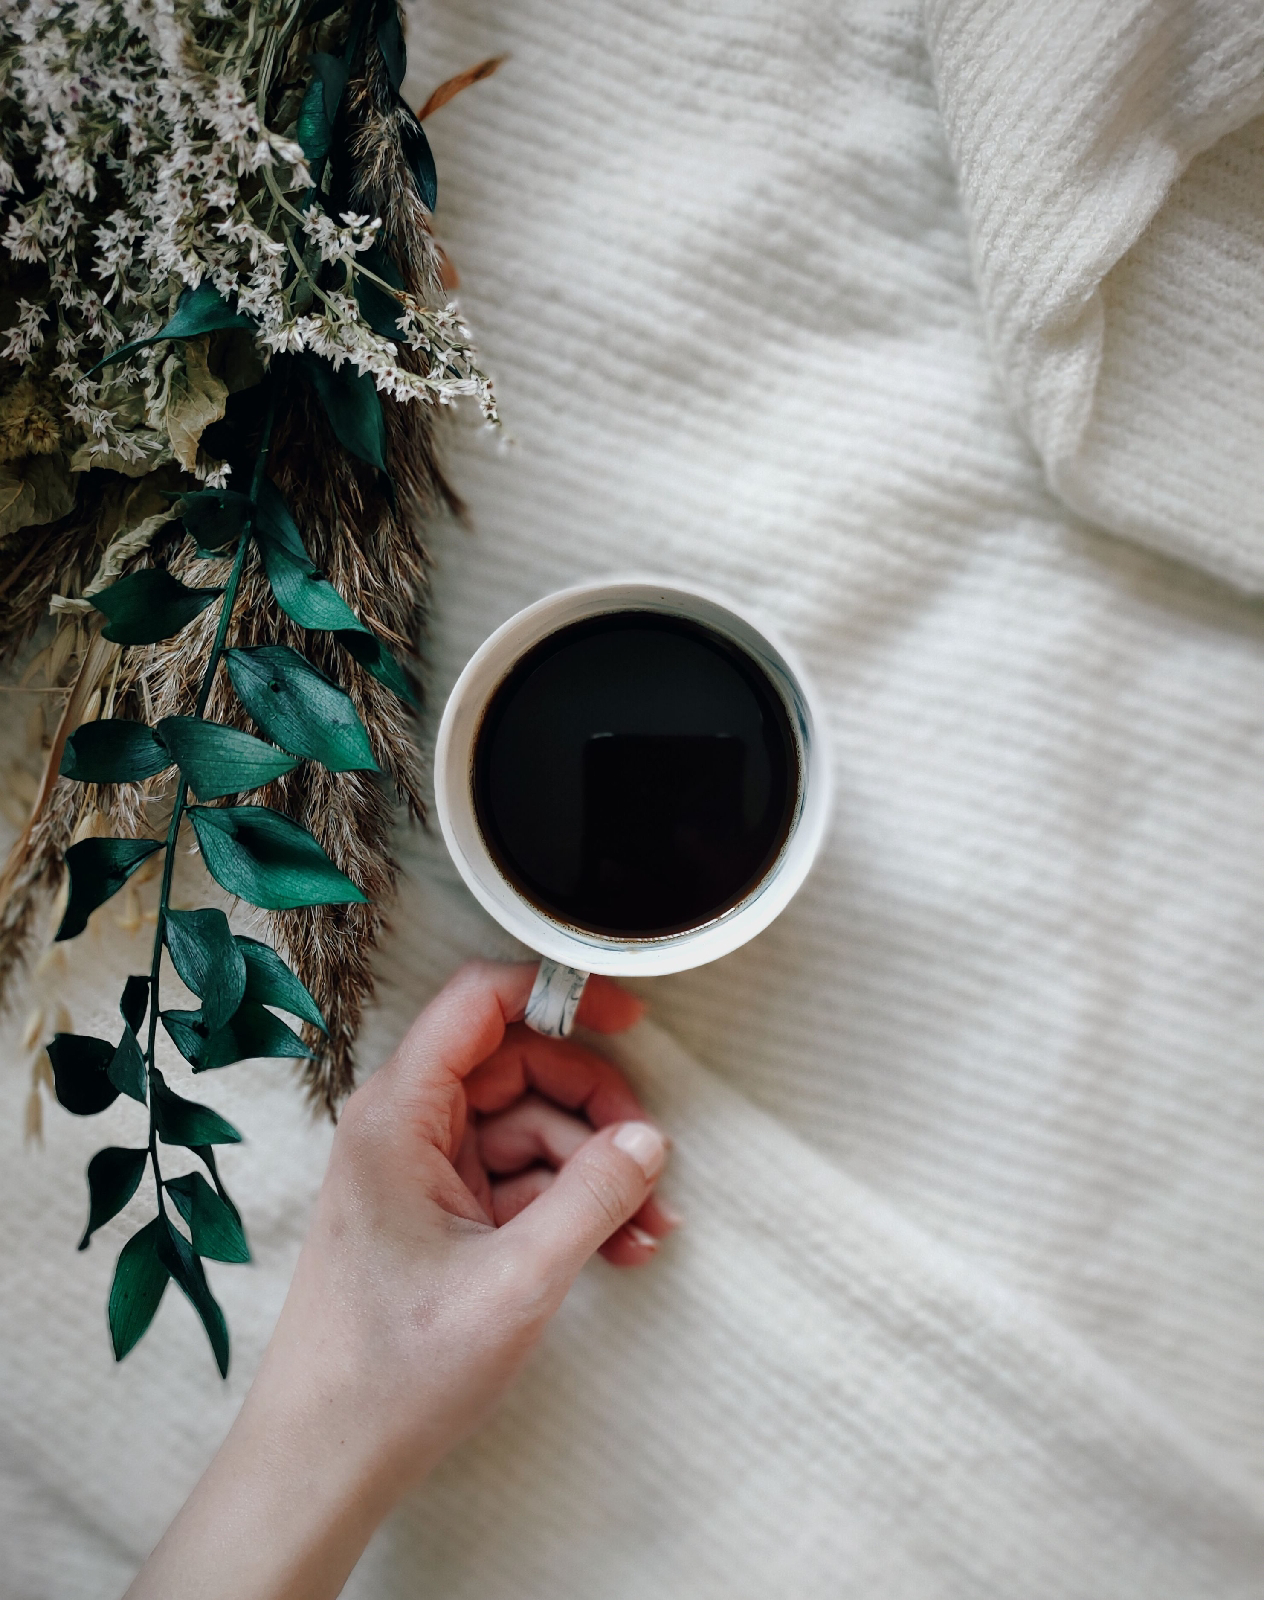 cup of black coffee next to a bouquet of dried flowers